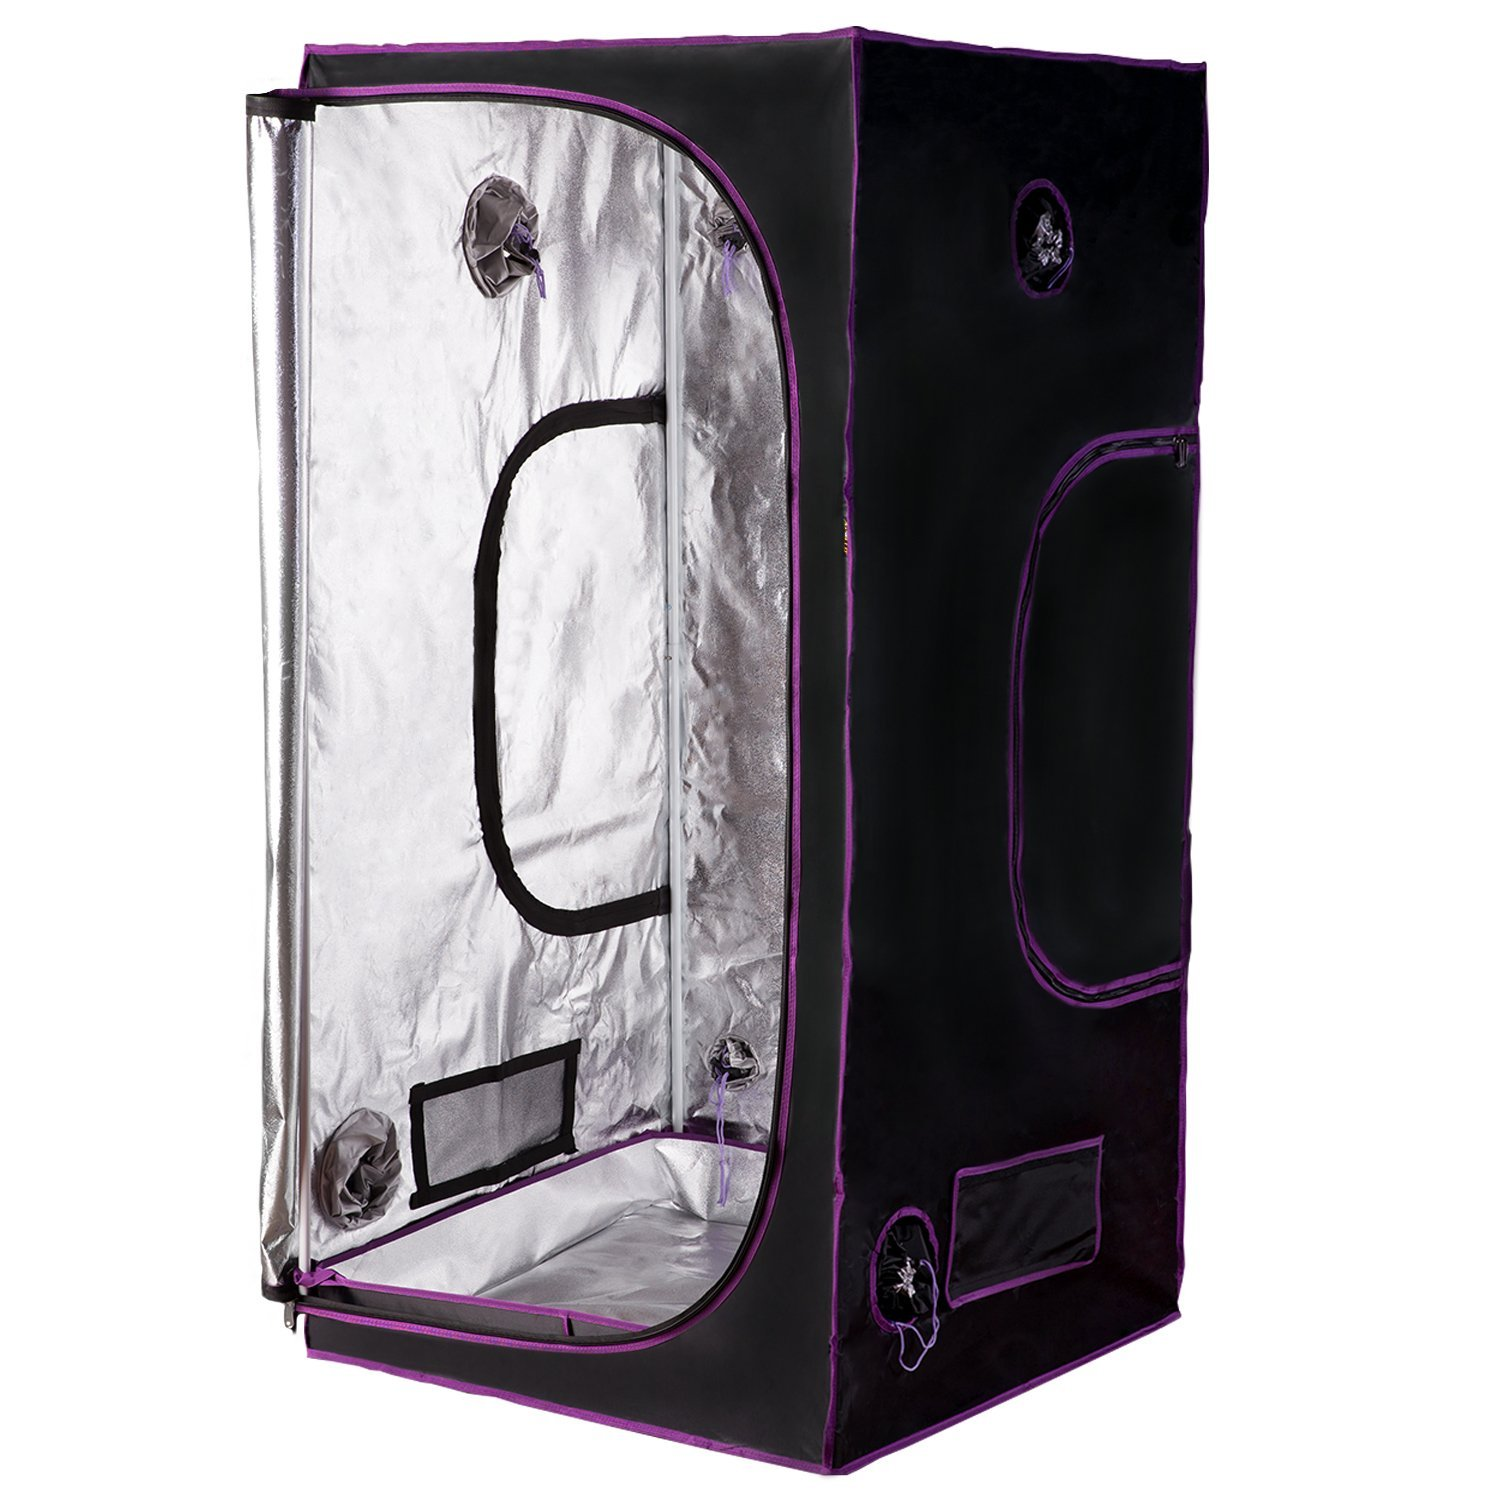 Apollo Horticulture 3×3 Popular Hydroponic Grow Tent